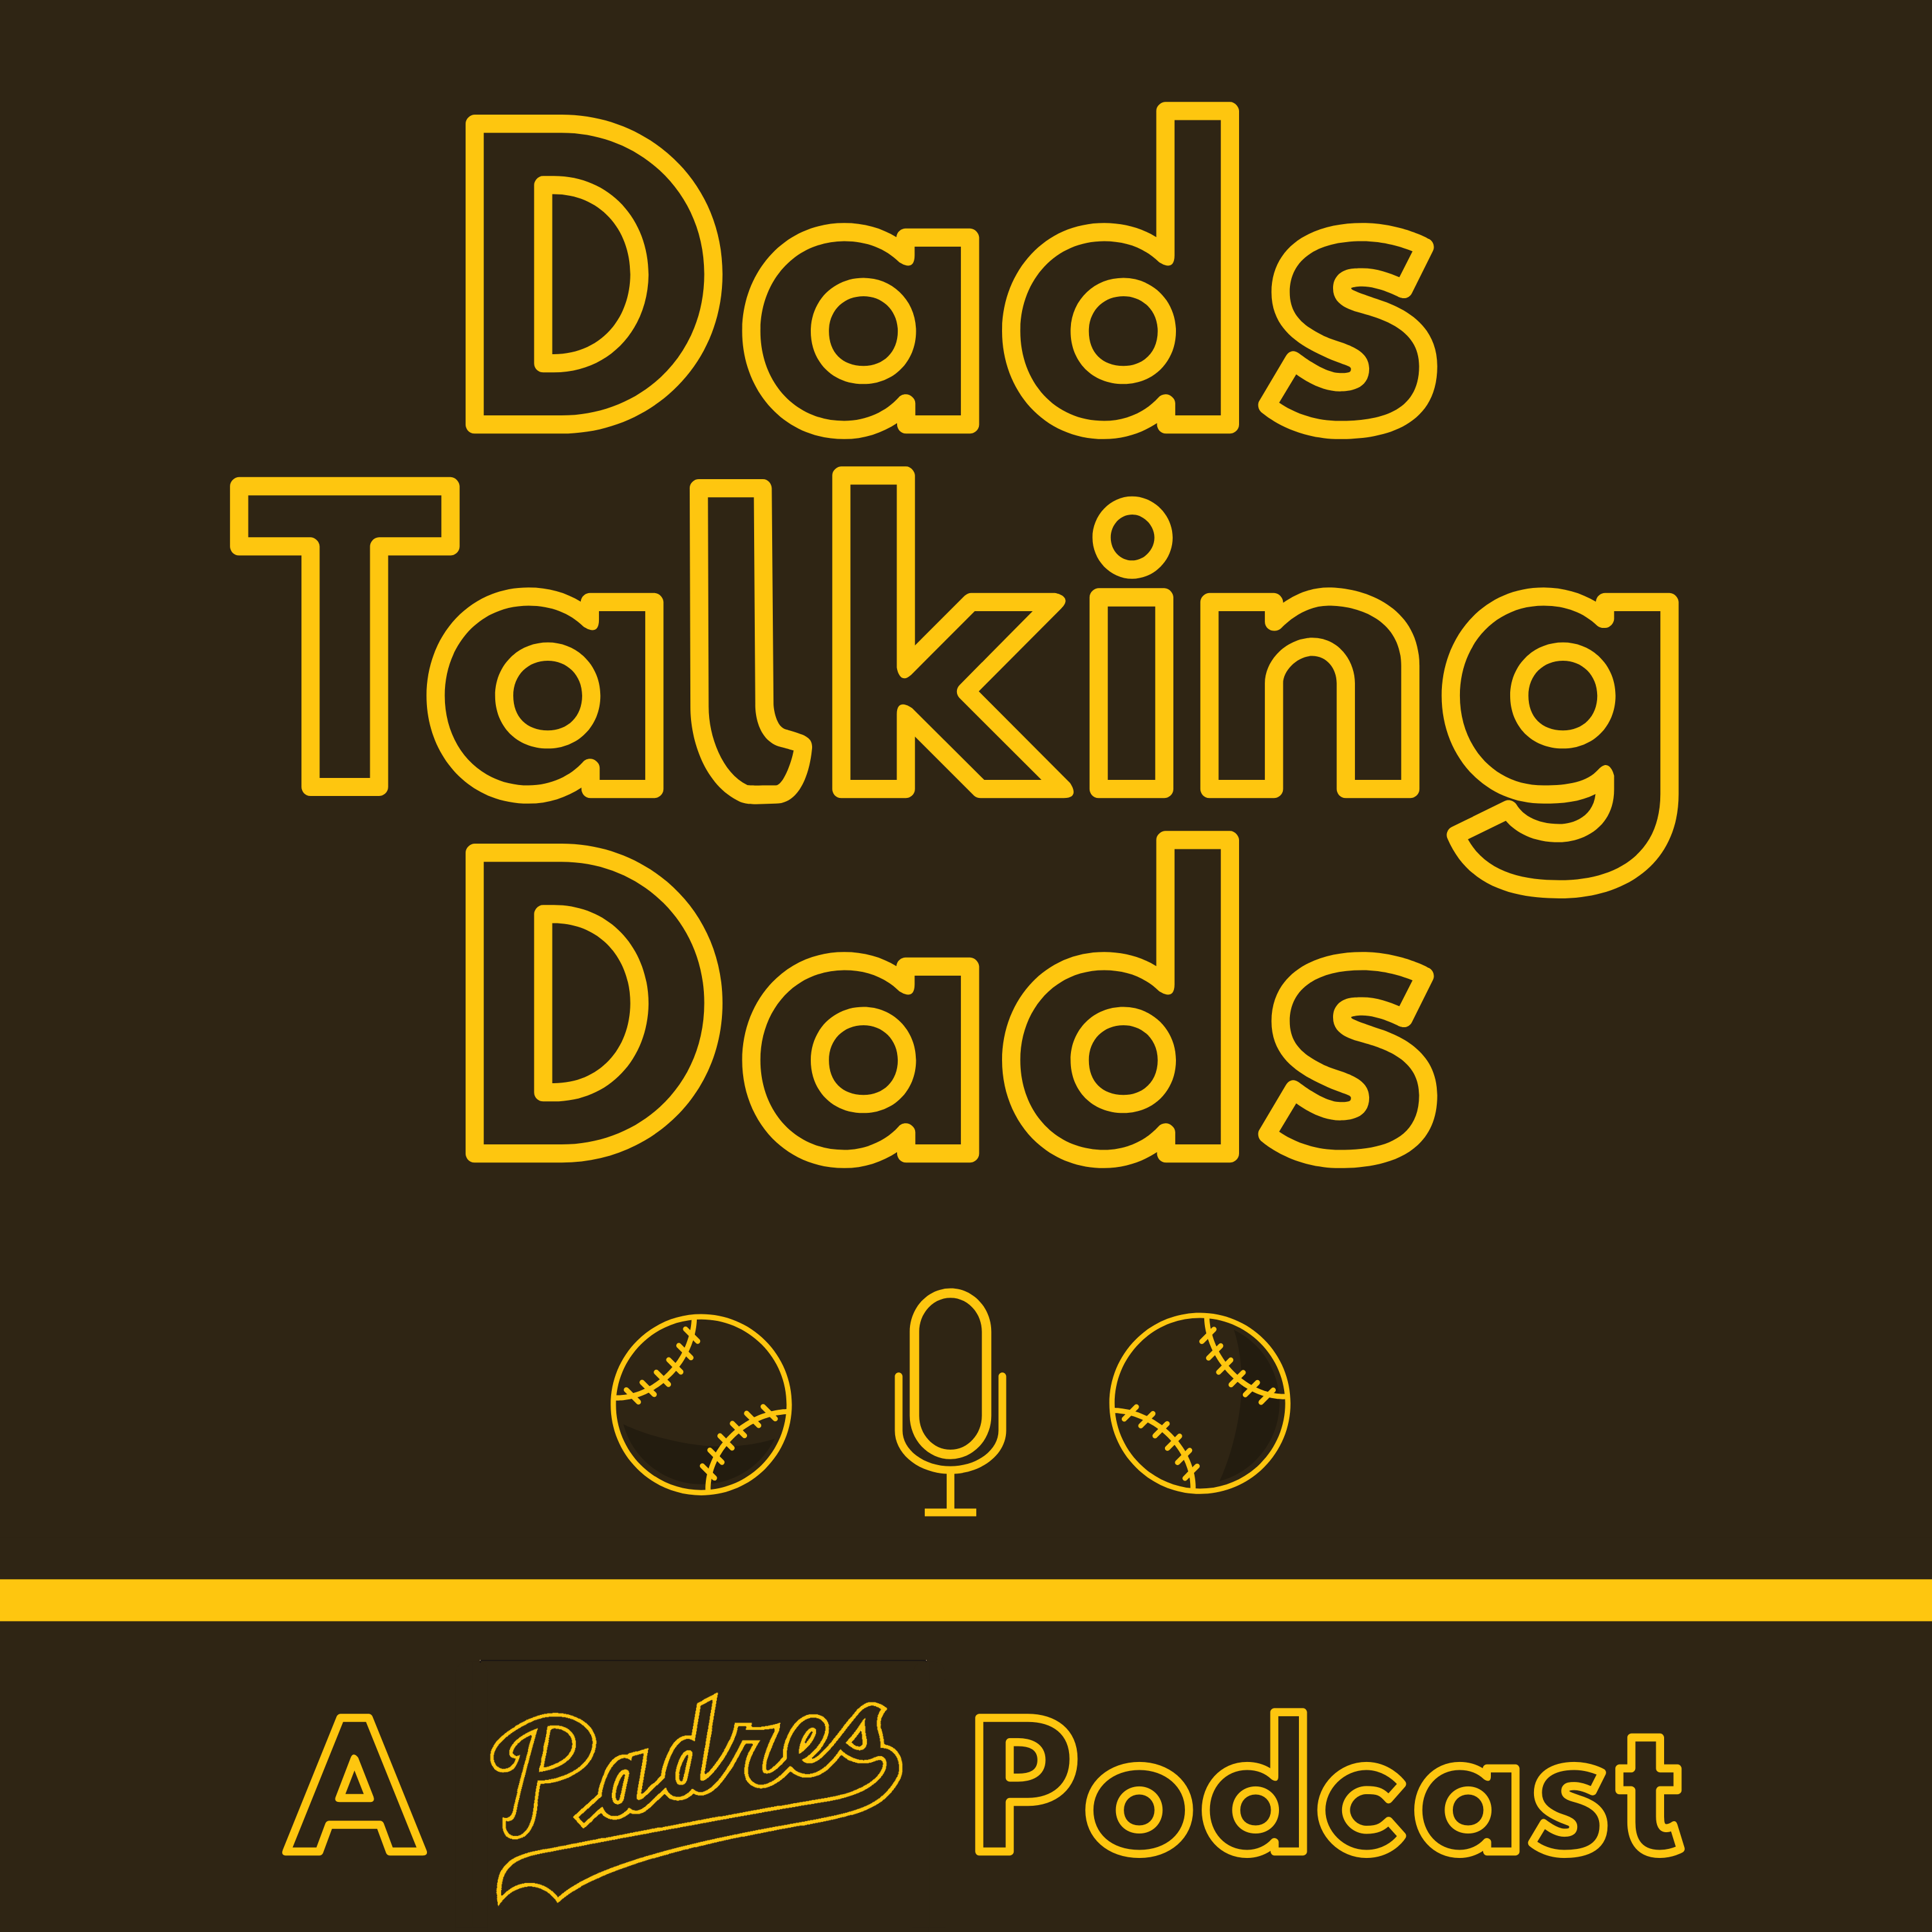 Dads Talking Dads   A Padres Podcast